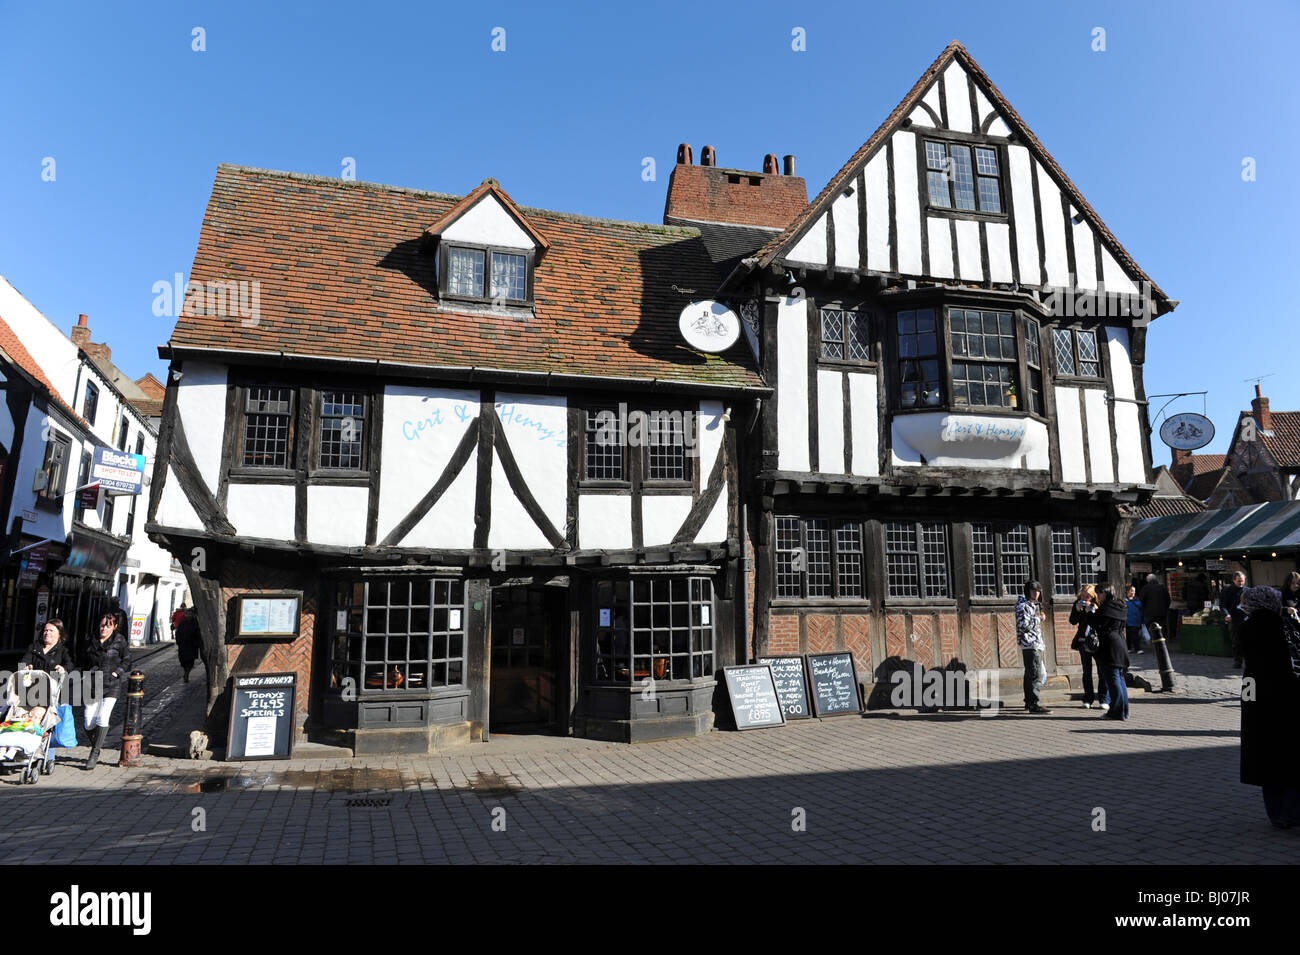 Gert and Henry's pub in the Shambles in City of York in North Yorkshire England Uk - Stock Image